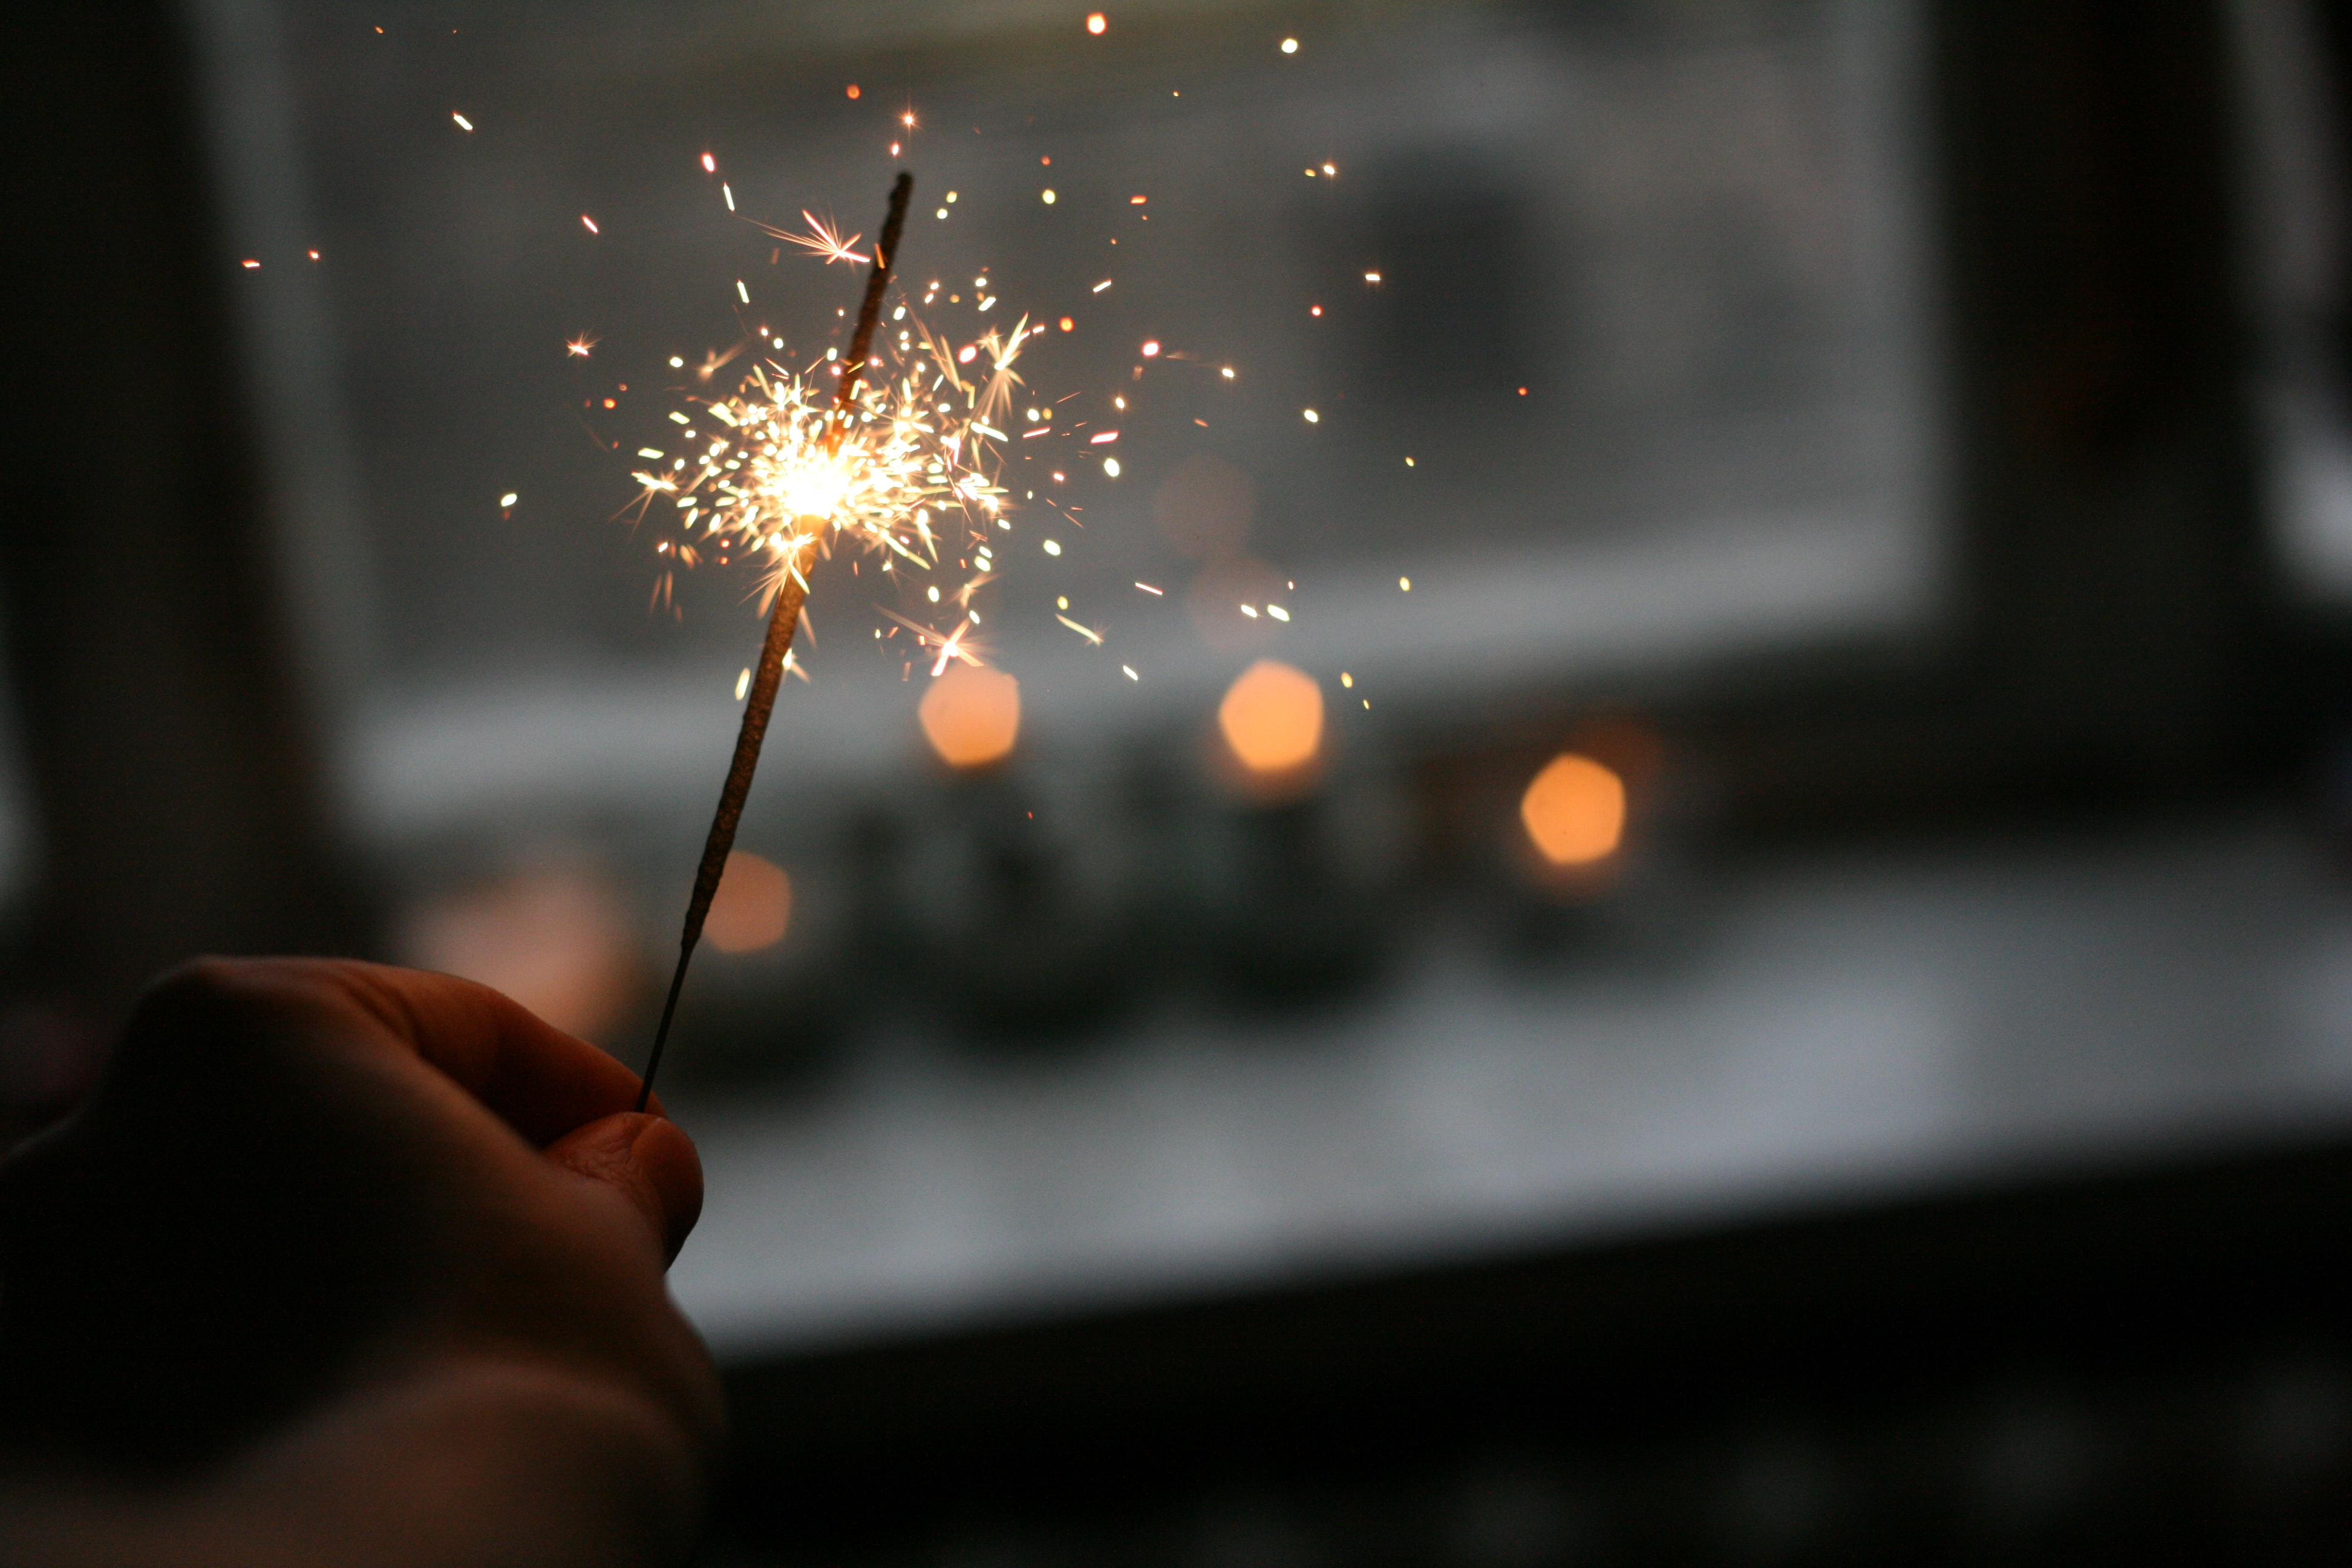 A person holding a sparkler near a window